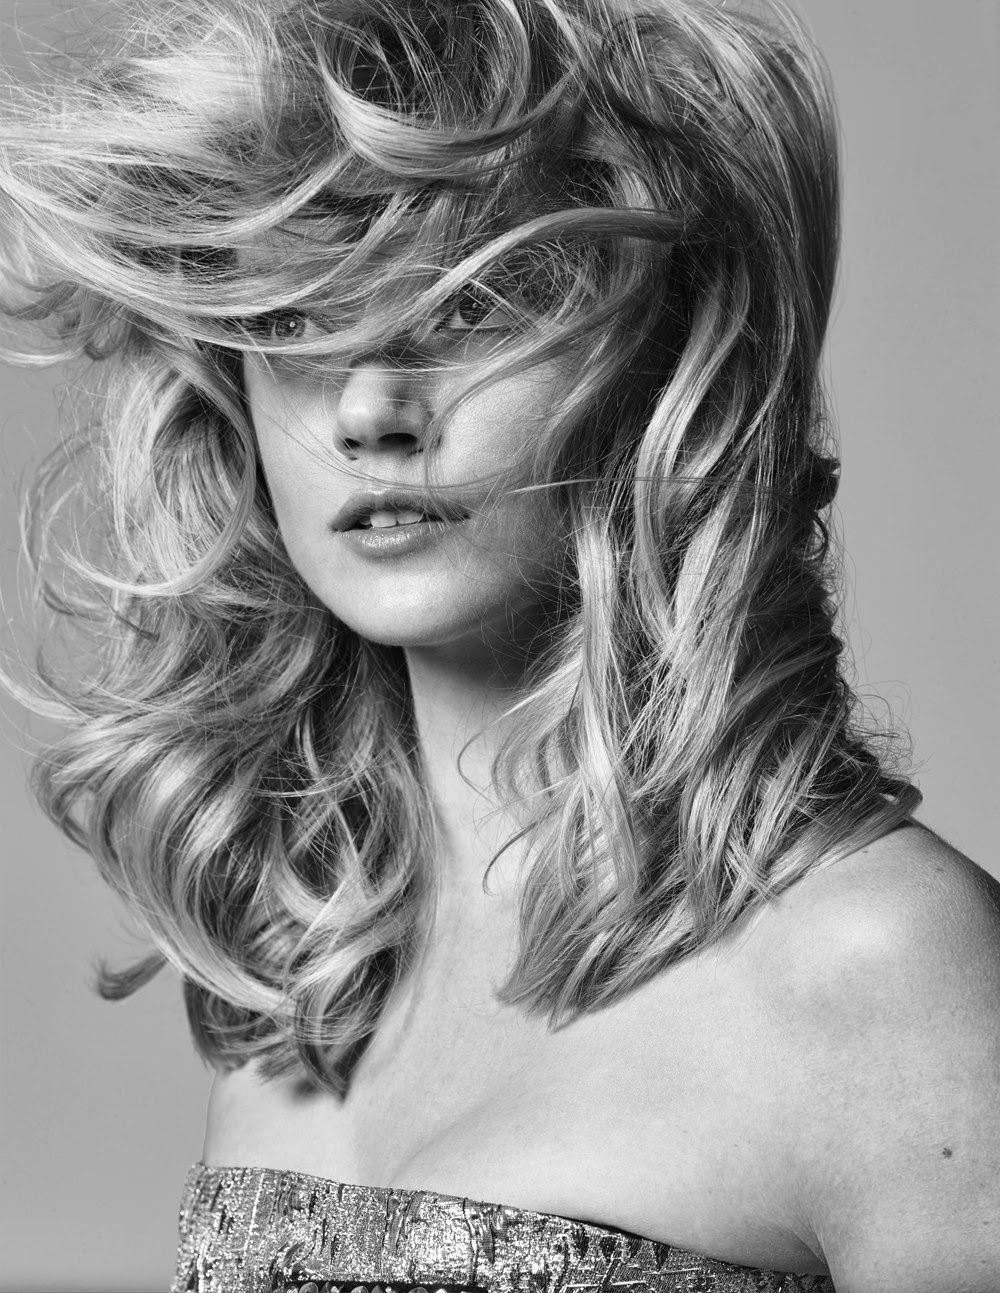 Lindsay Ellingson Elle Korea Magazine Photoshoot February 2014 By Hong Jang Hyun